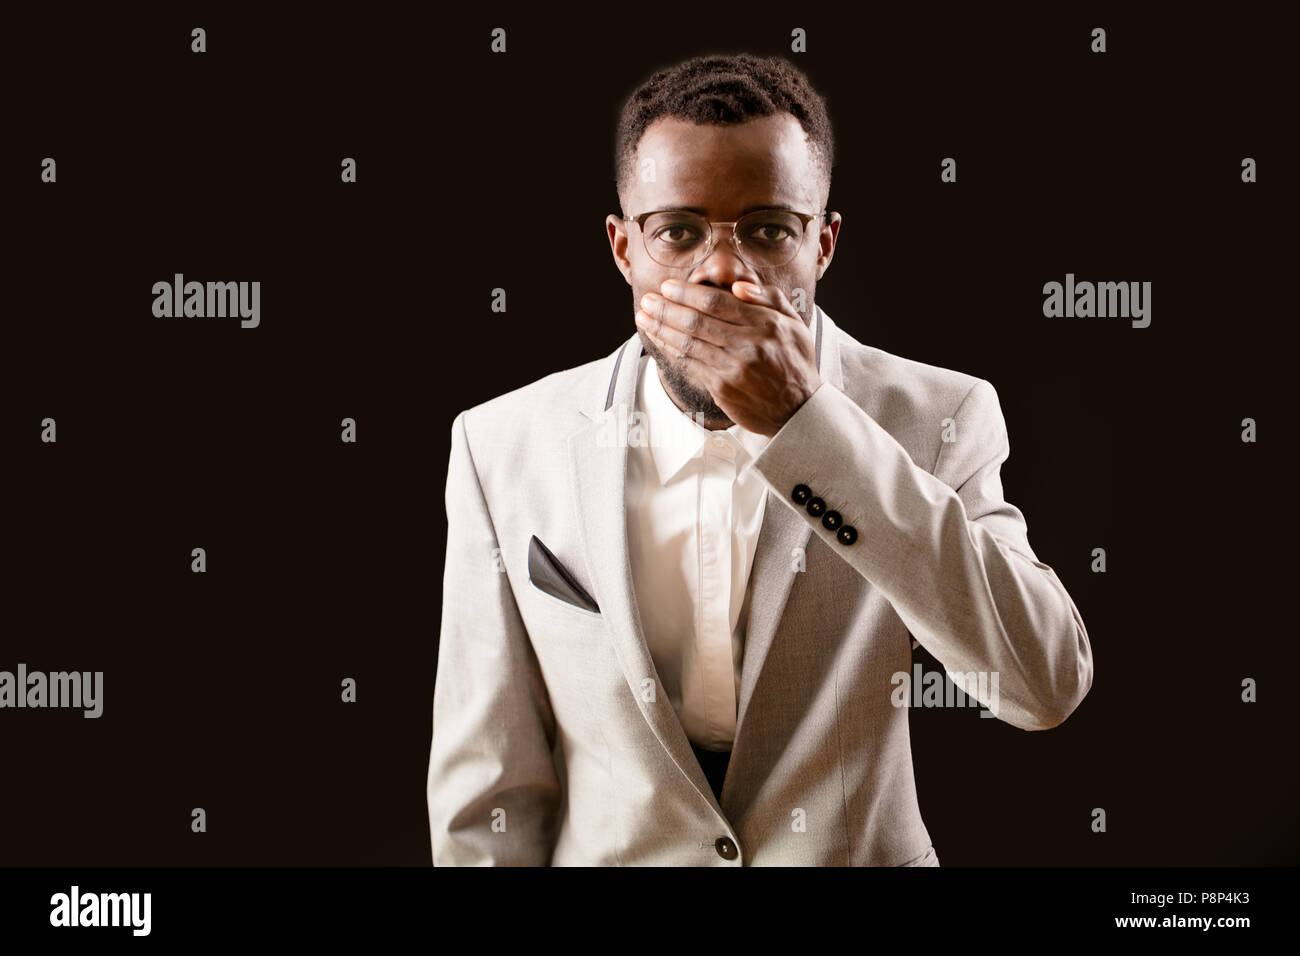 Young scared Afro man in glasses keeping his mouth closed by his hand on dark background. open-eyed man - Stock Image